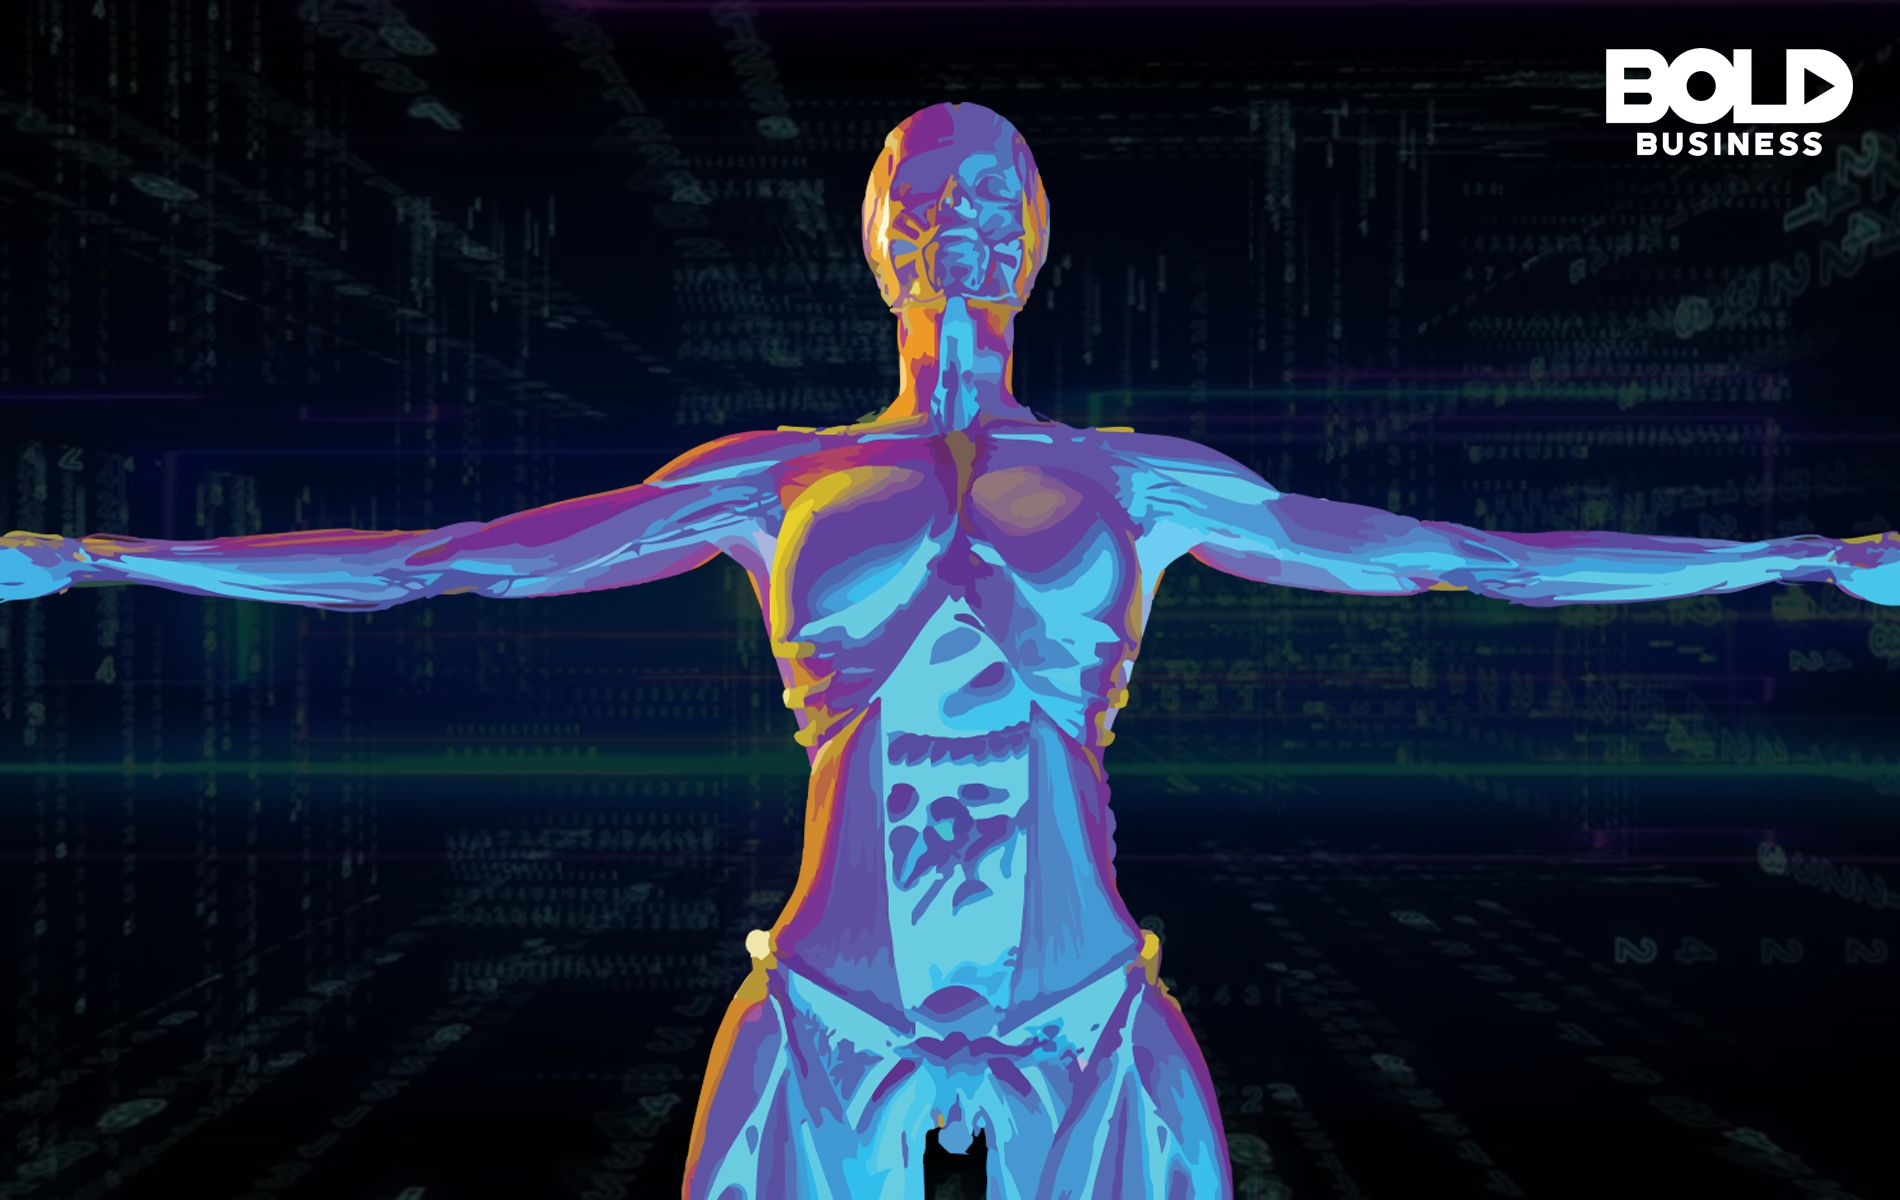 an infrared-like image of a human body amid talks about big data in biology and health